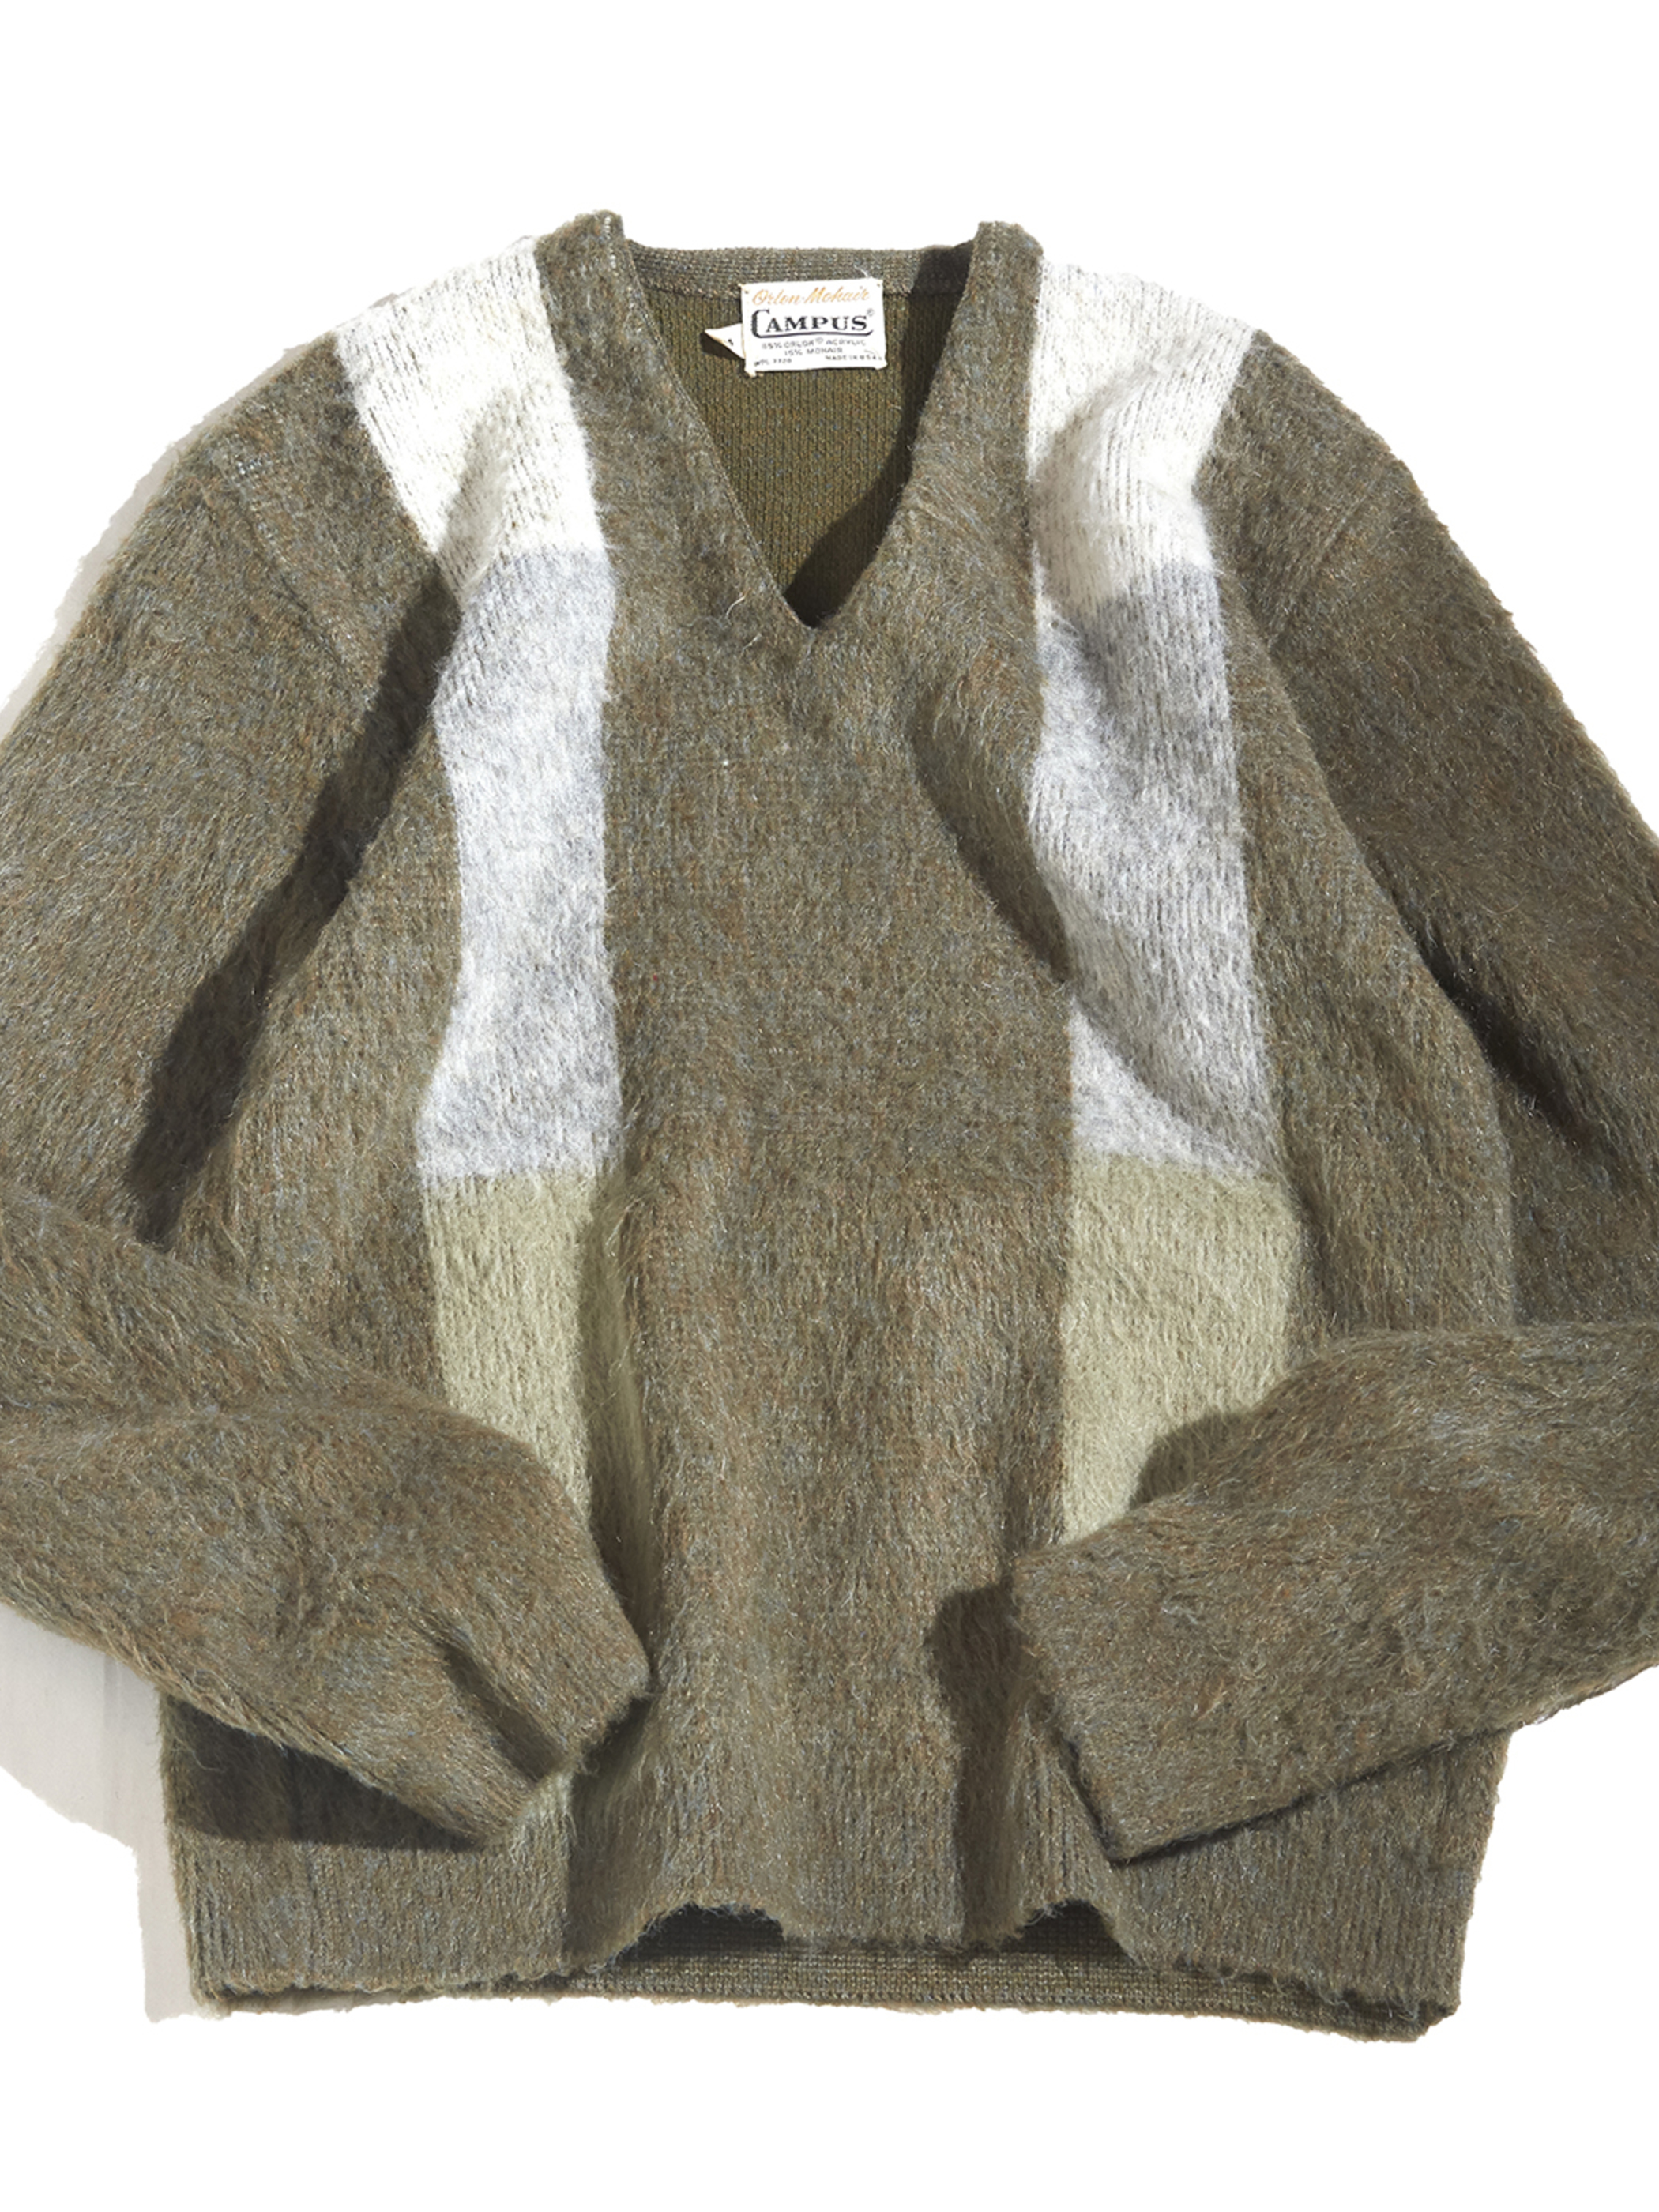 """1960s """"CAMPUS"""" mohair v-neck knit -OLIVE-"""